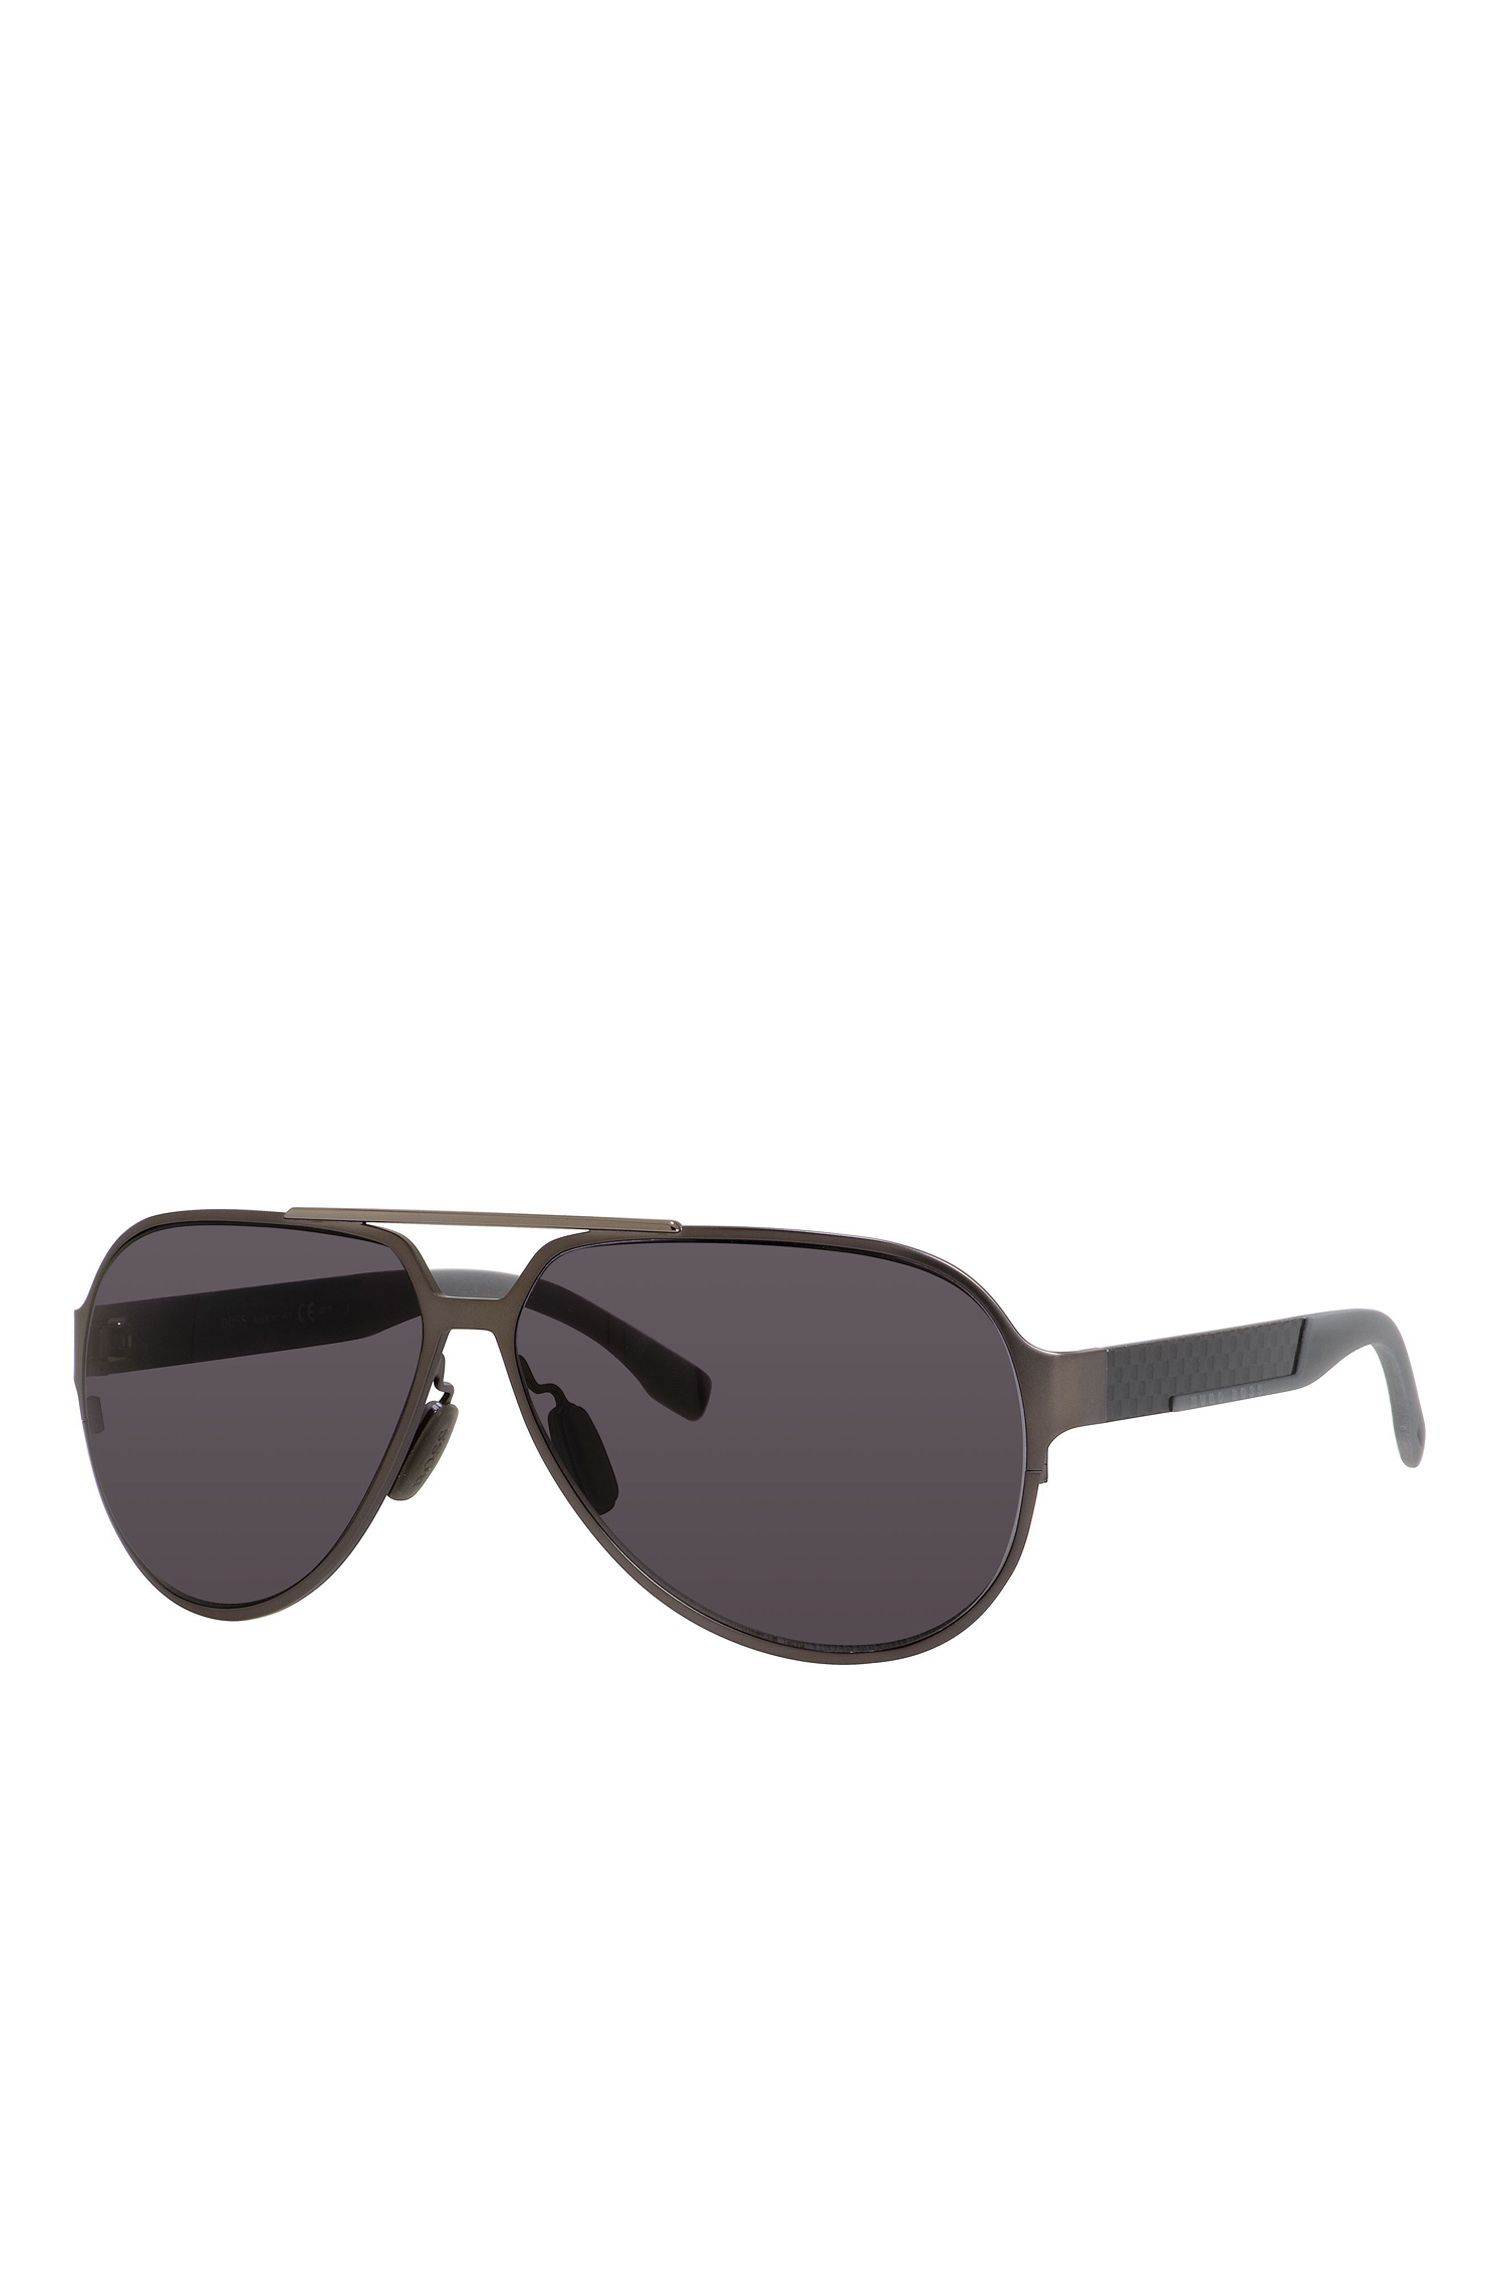 'BOSS  0669S' | Black Lens Carbon Fiber Aviator Sunglasses